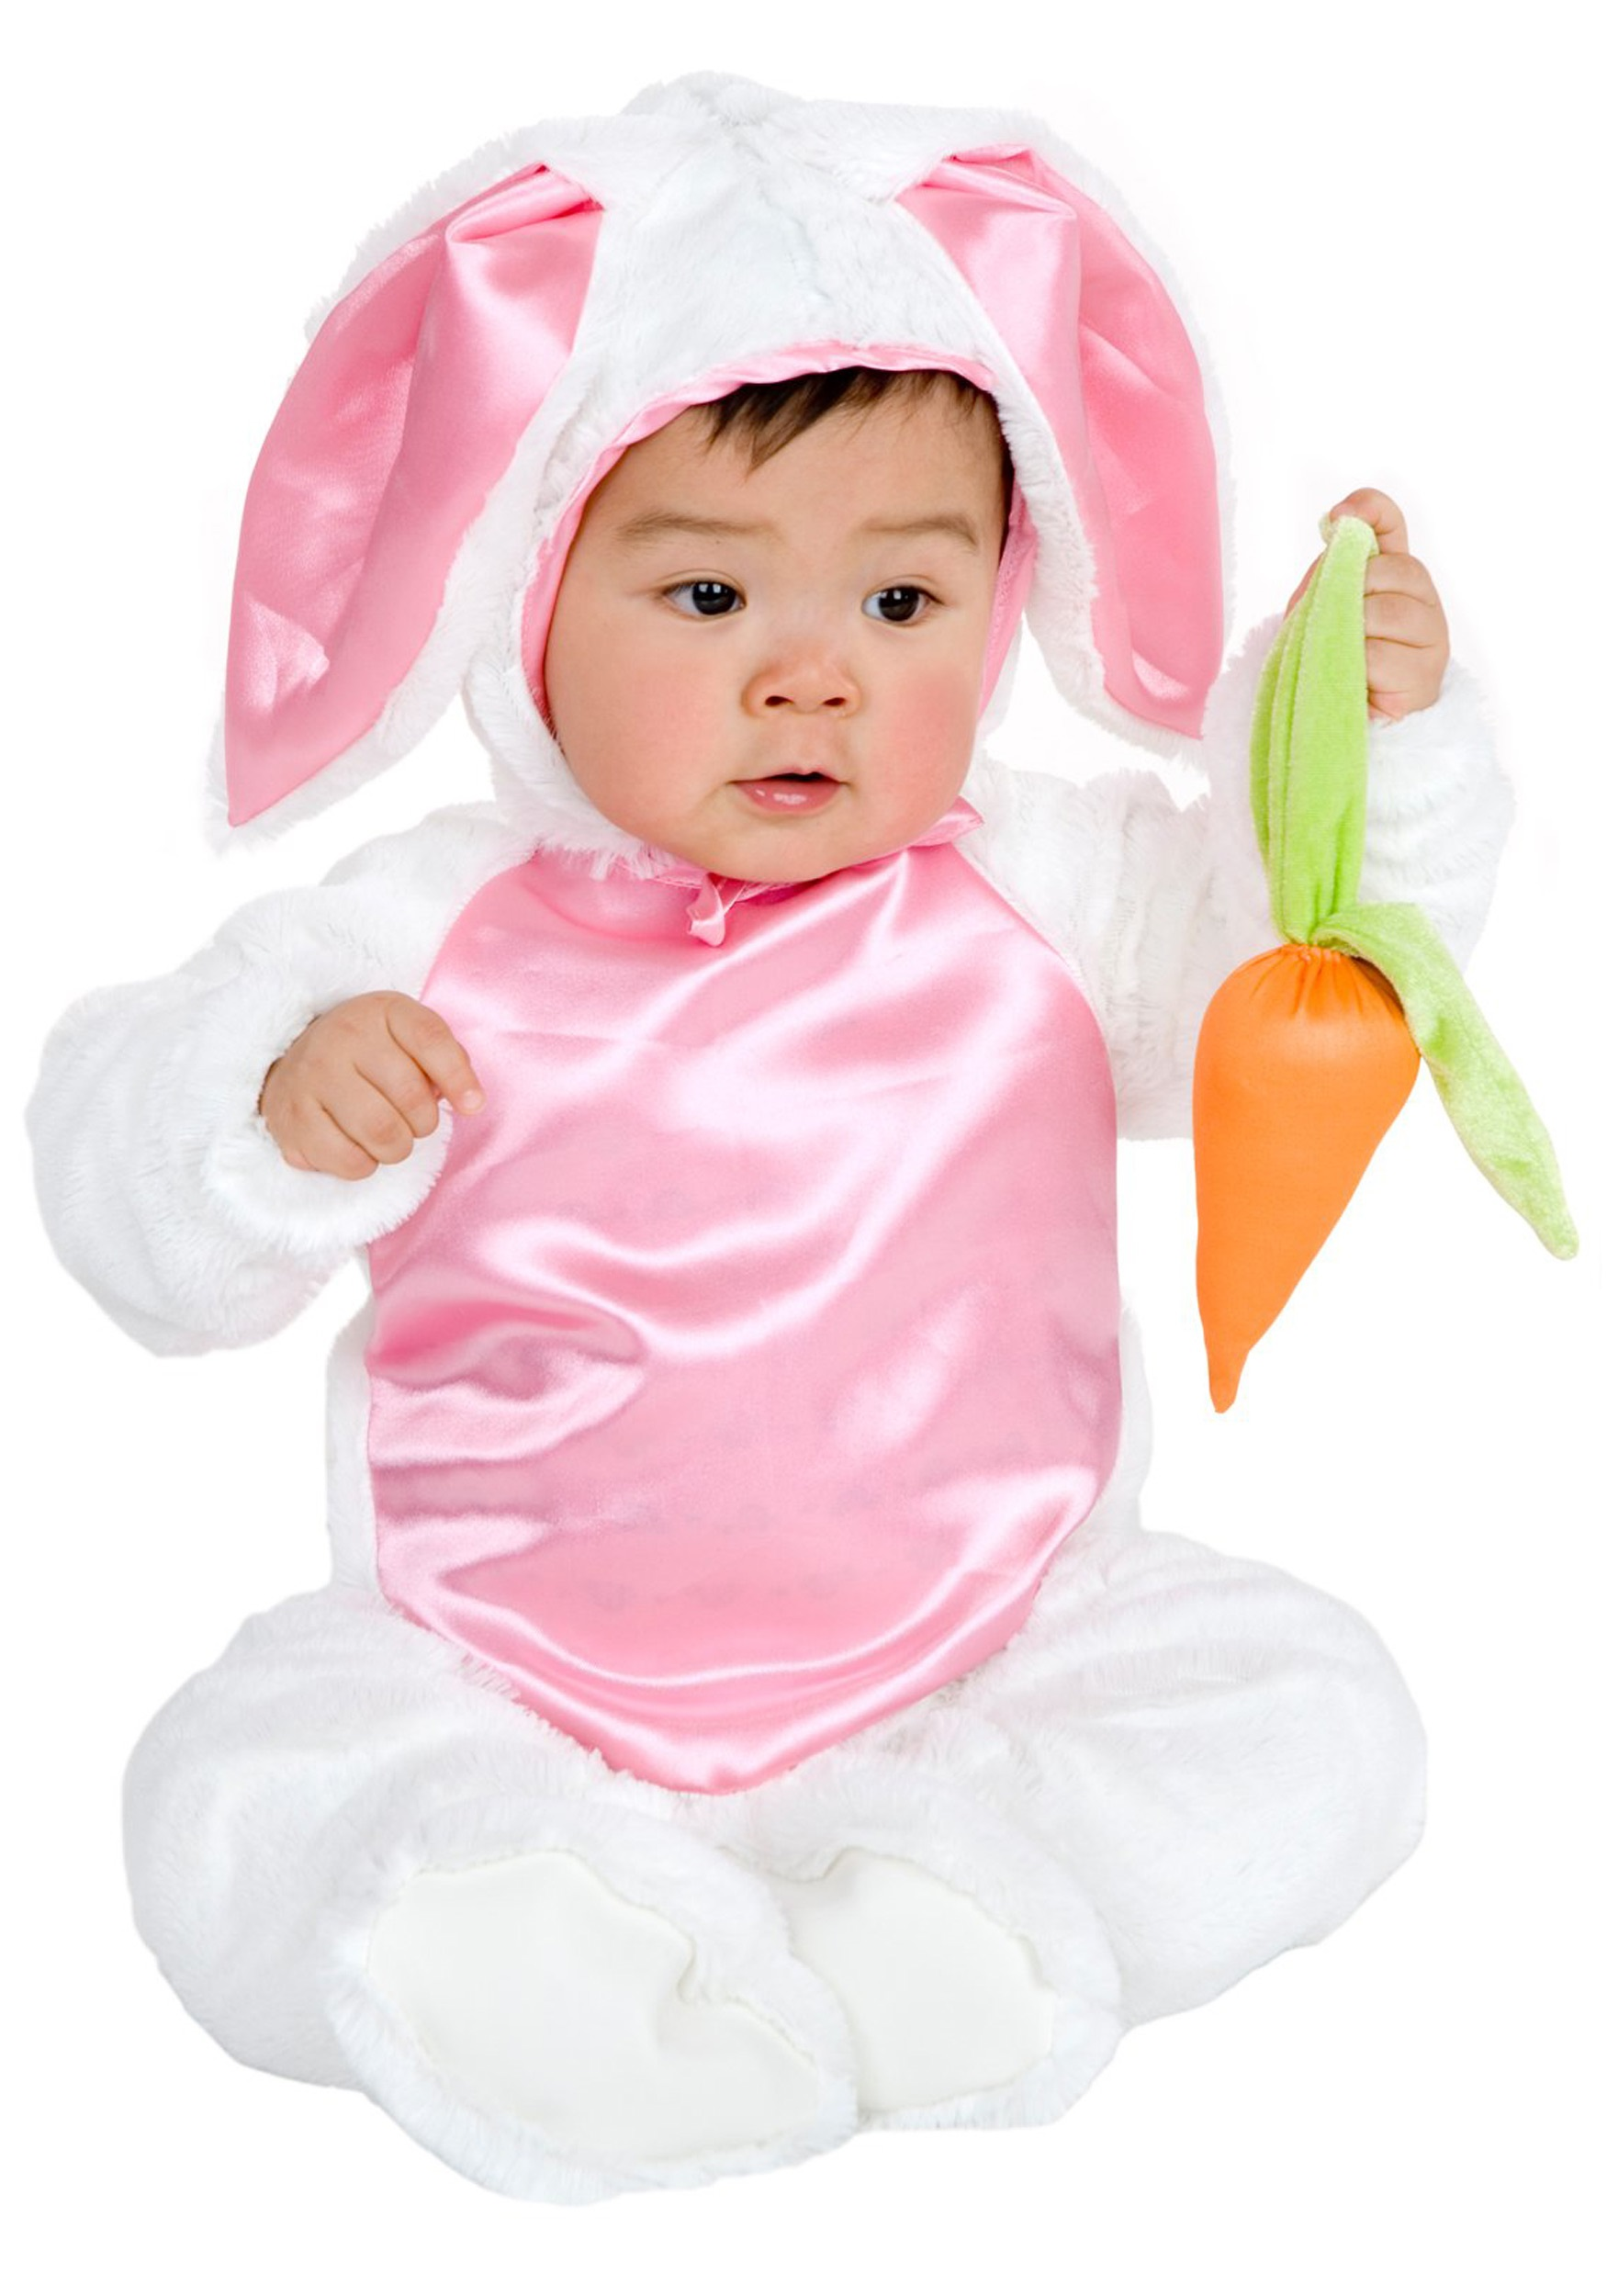 Results 181 - 240 of 450 for Baby Halloween Costumes